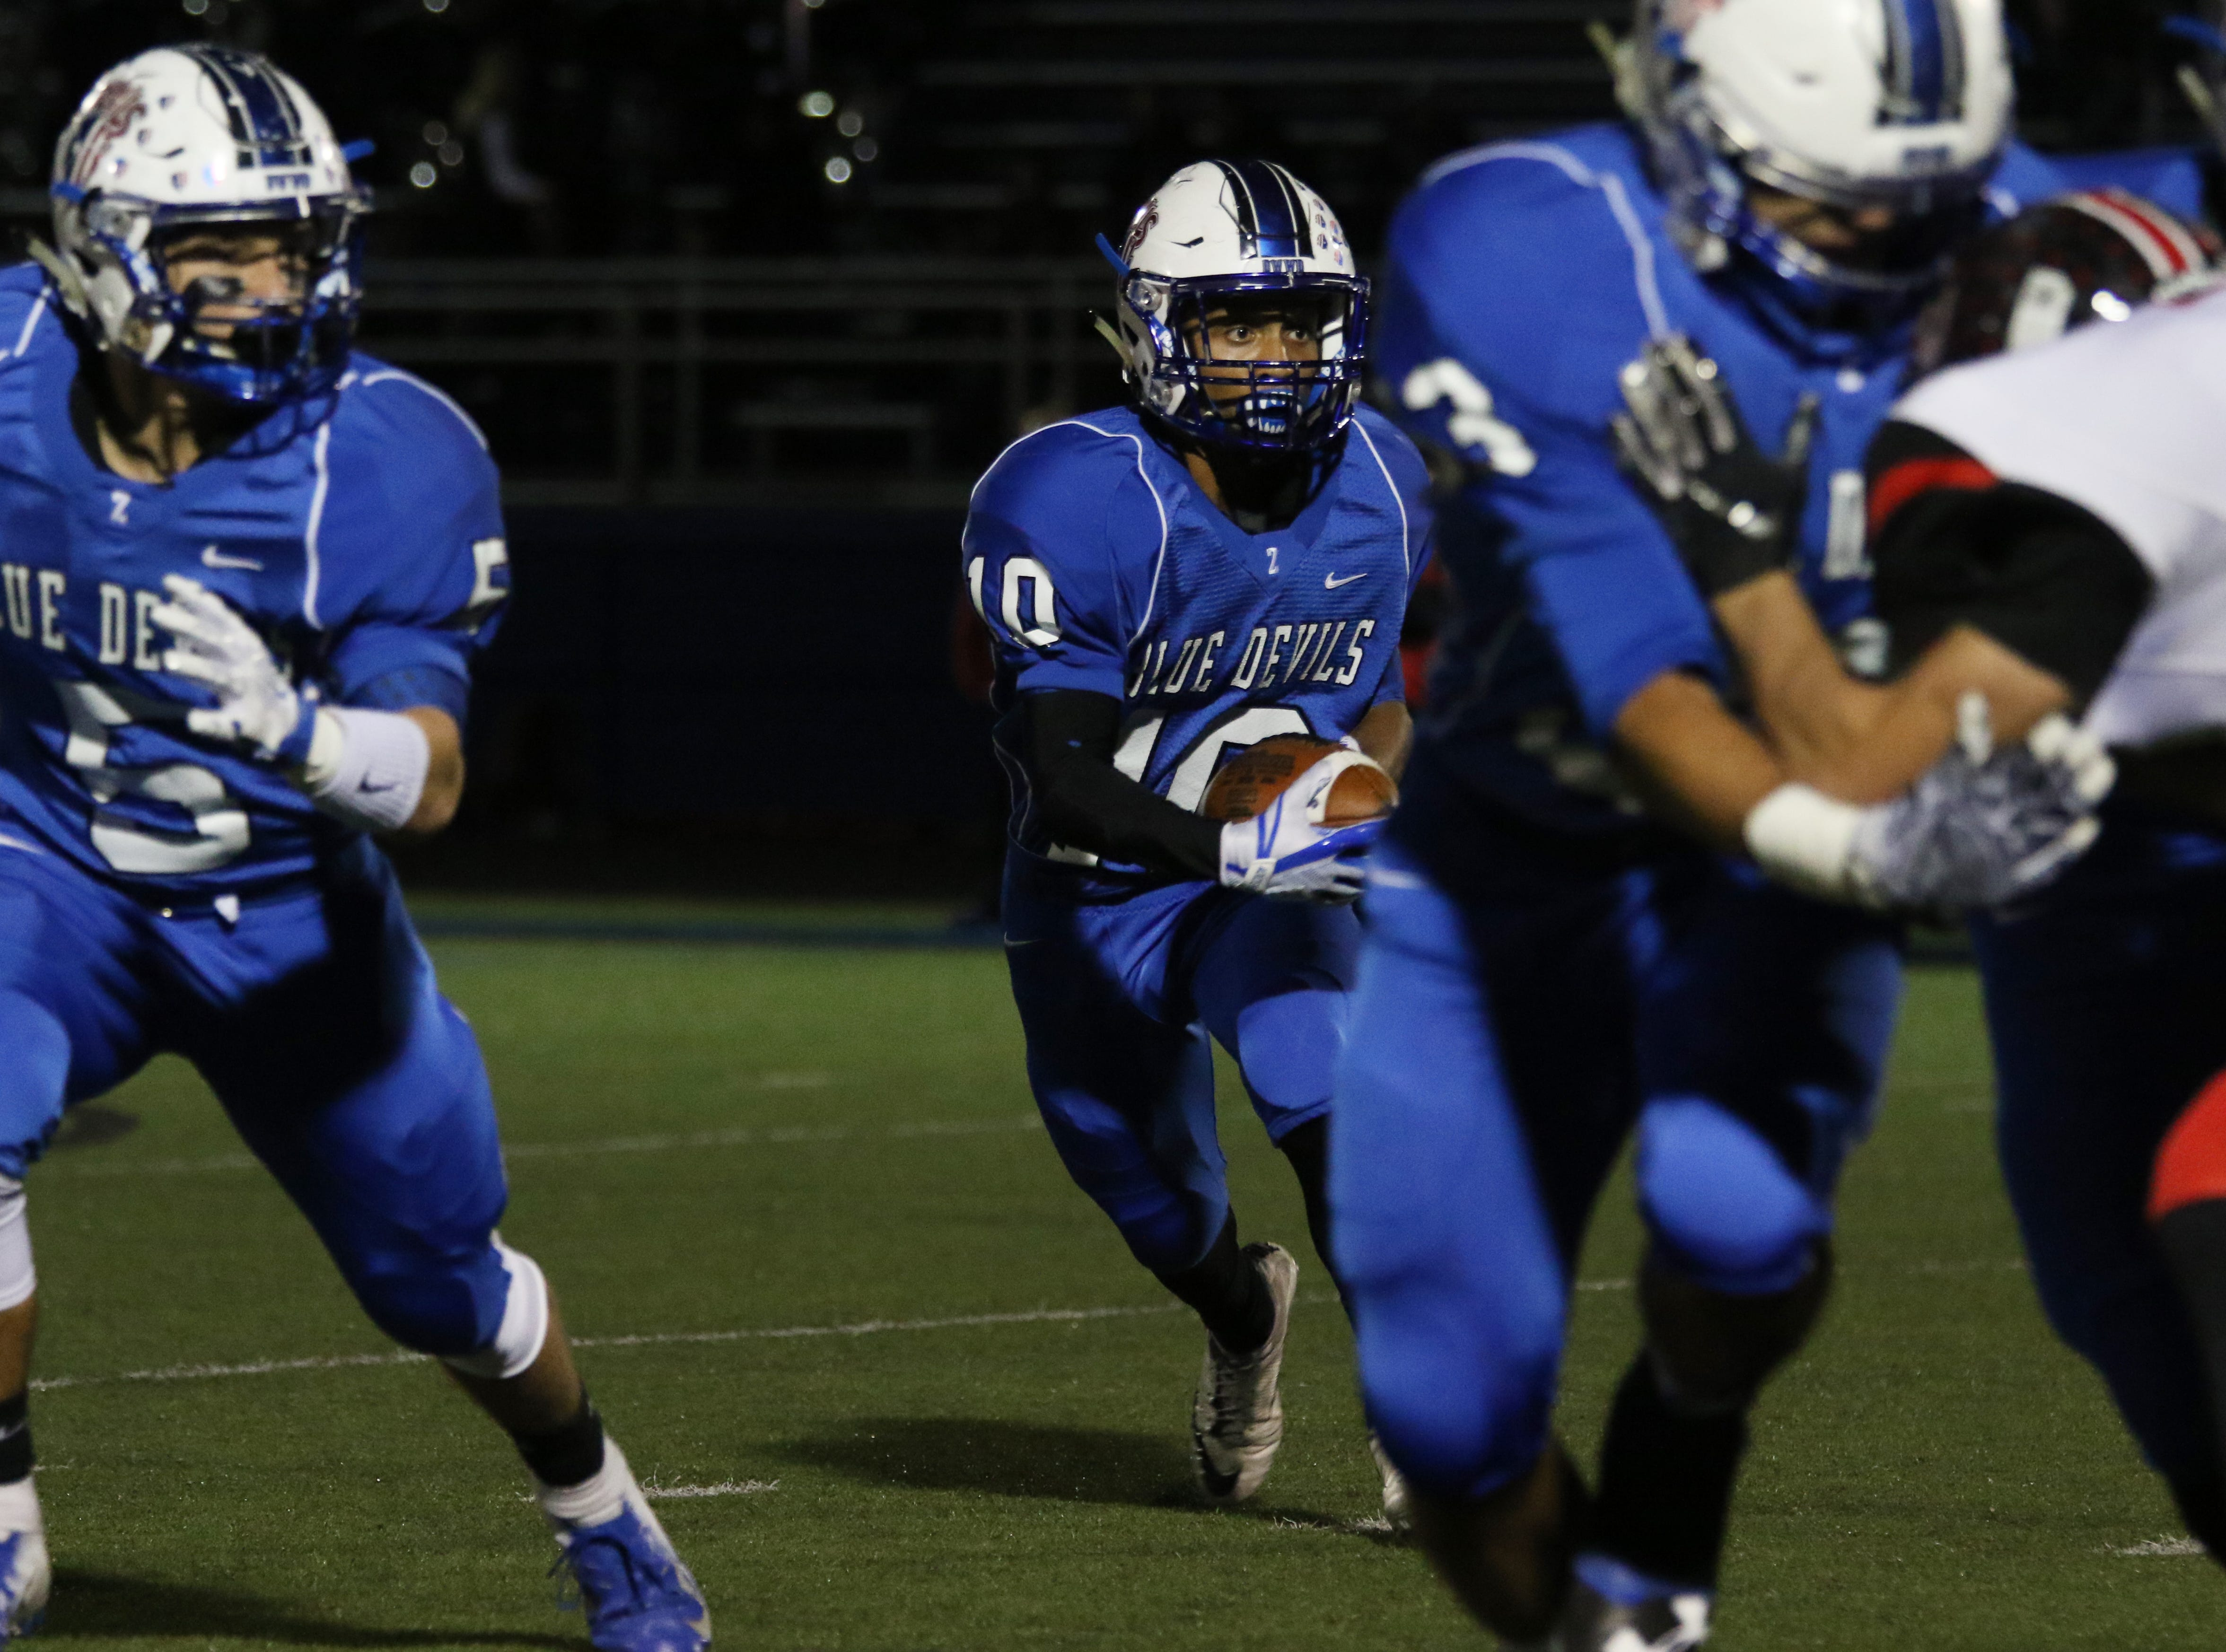 Zanesville's Jeremiah Norman carries the ball against New Philadelphia.